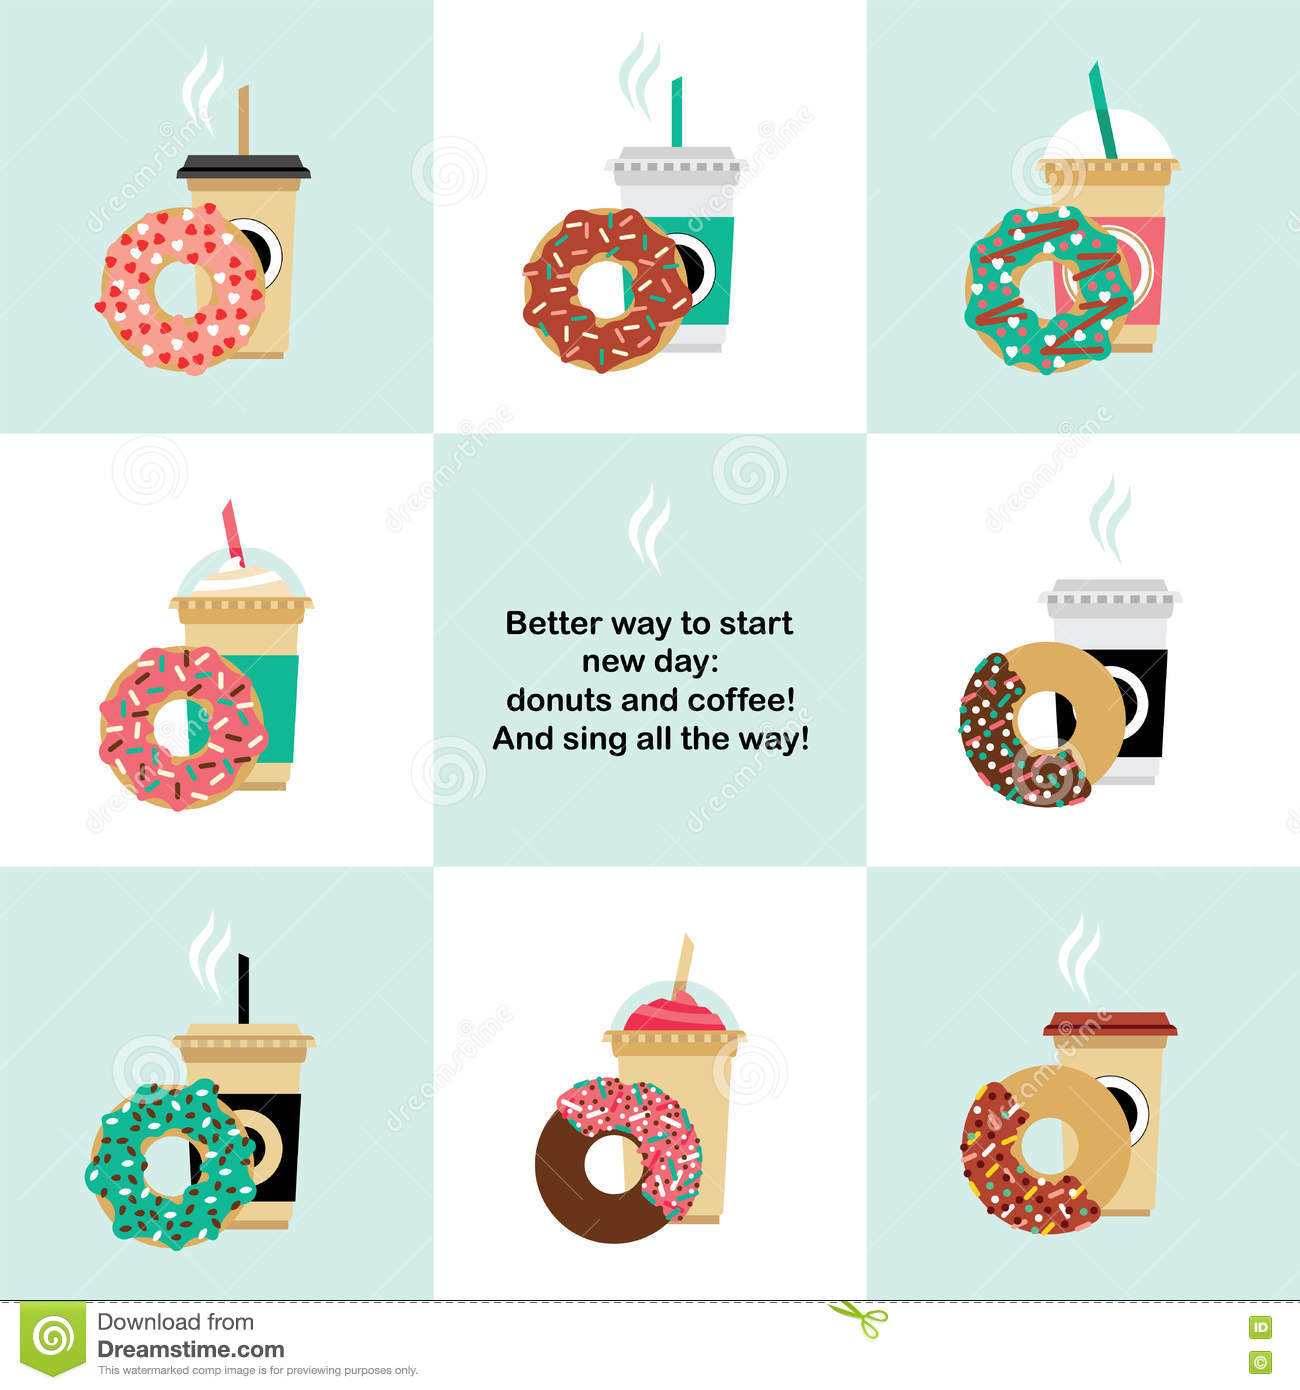 Donut and coffe set